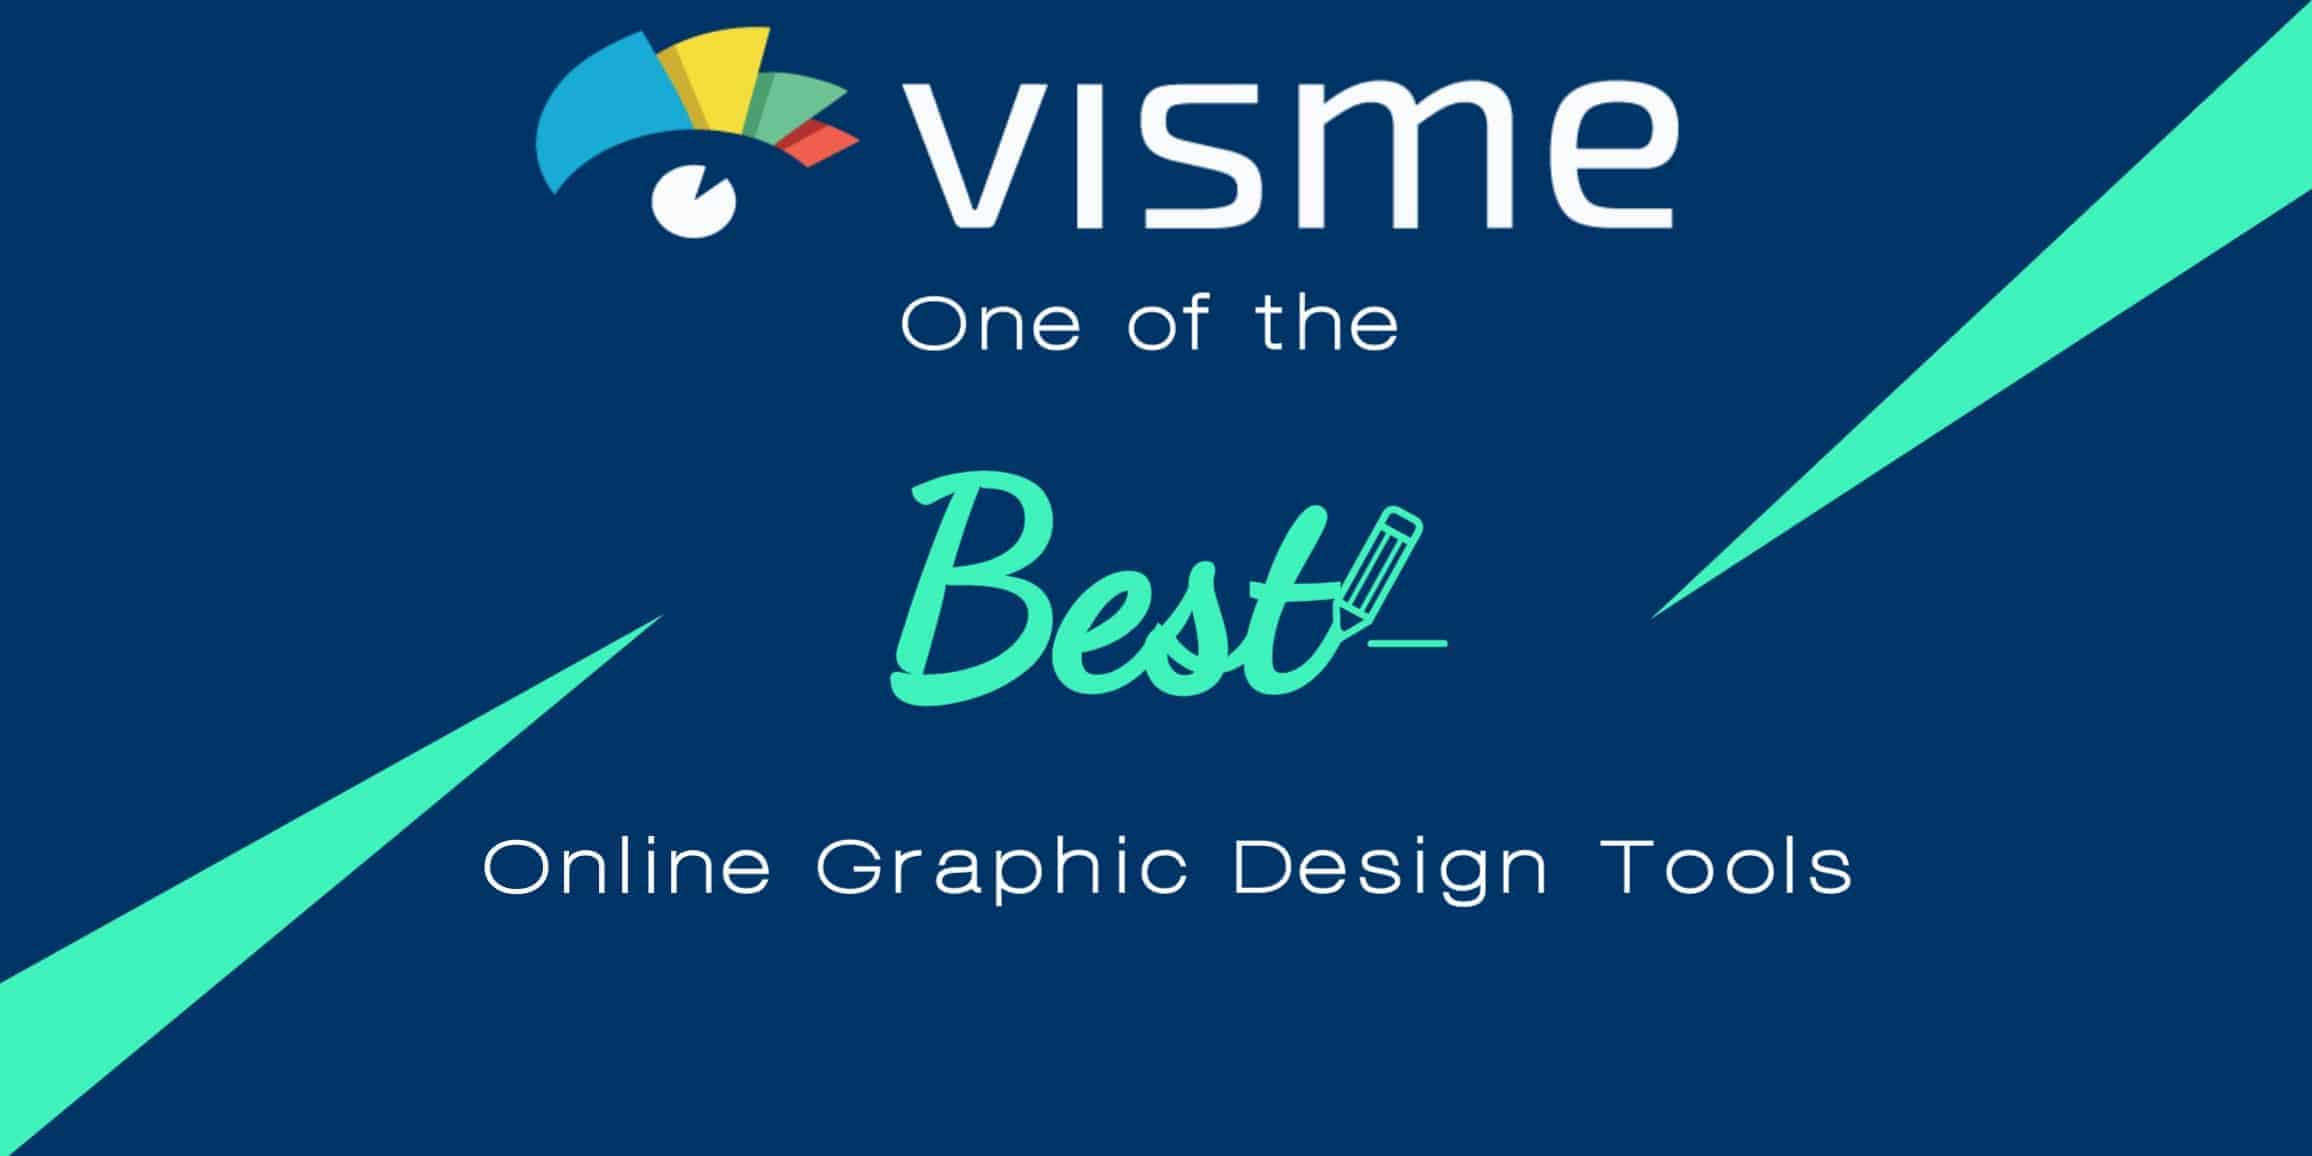 Visme, One Of The Best Online Graphic Design Tools